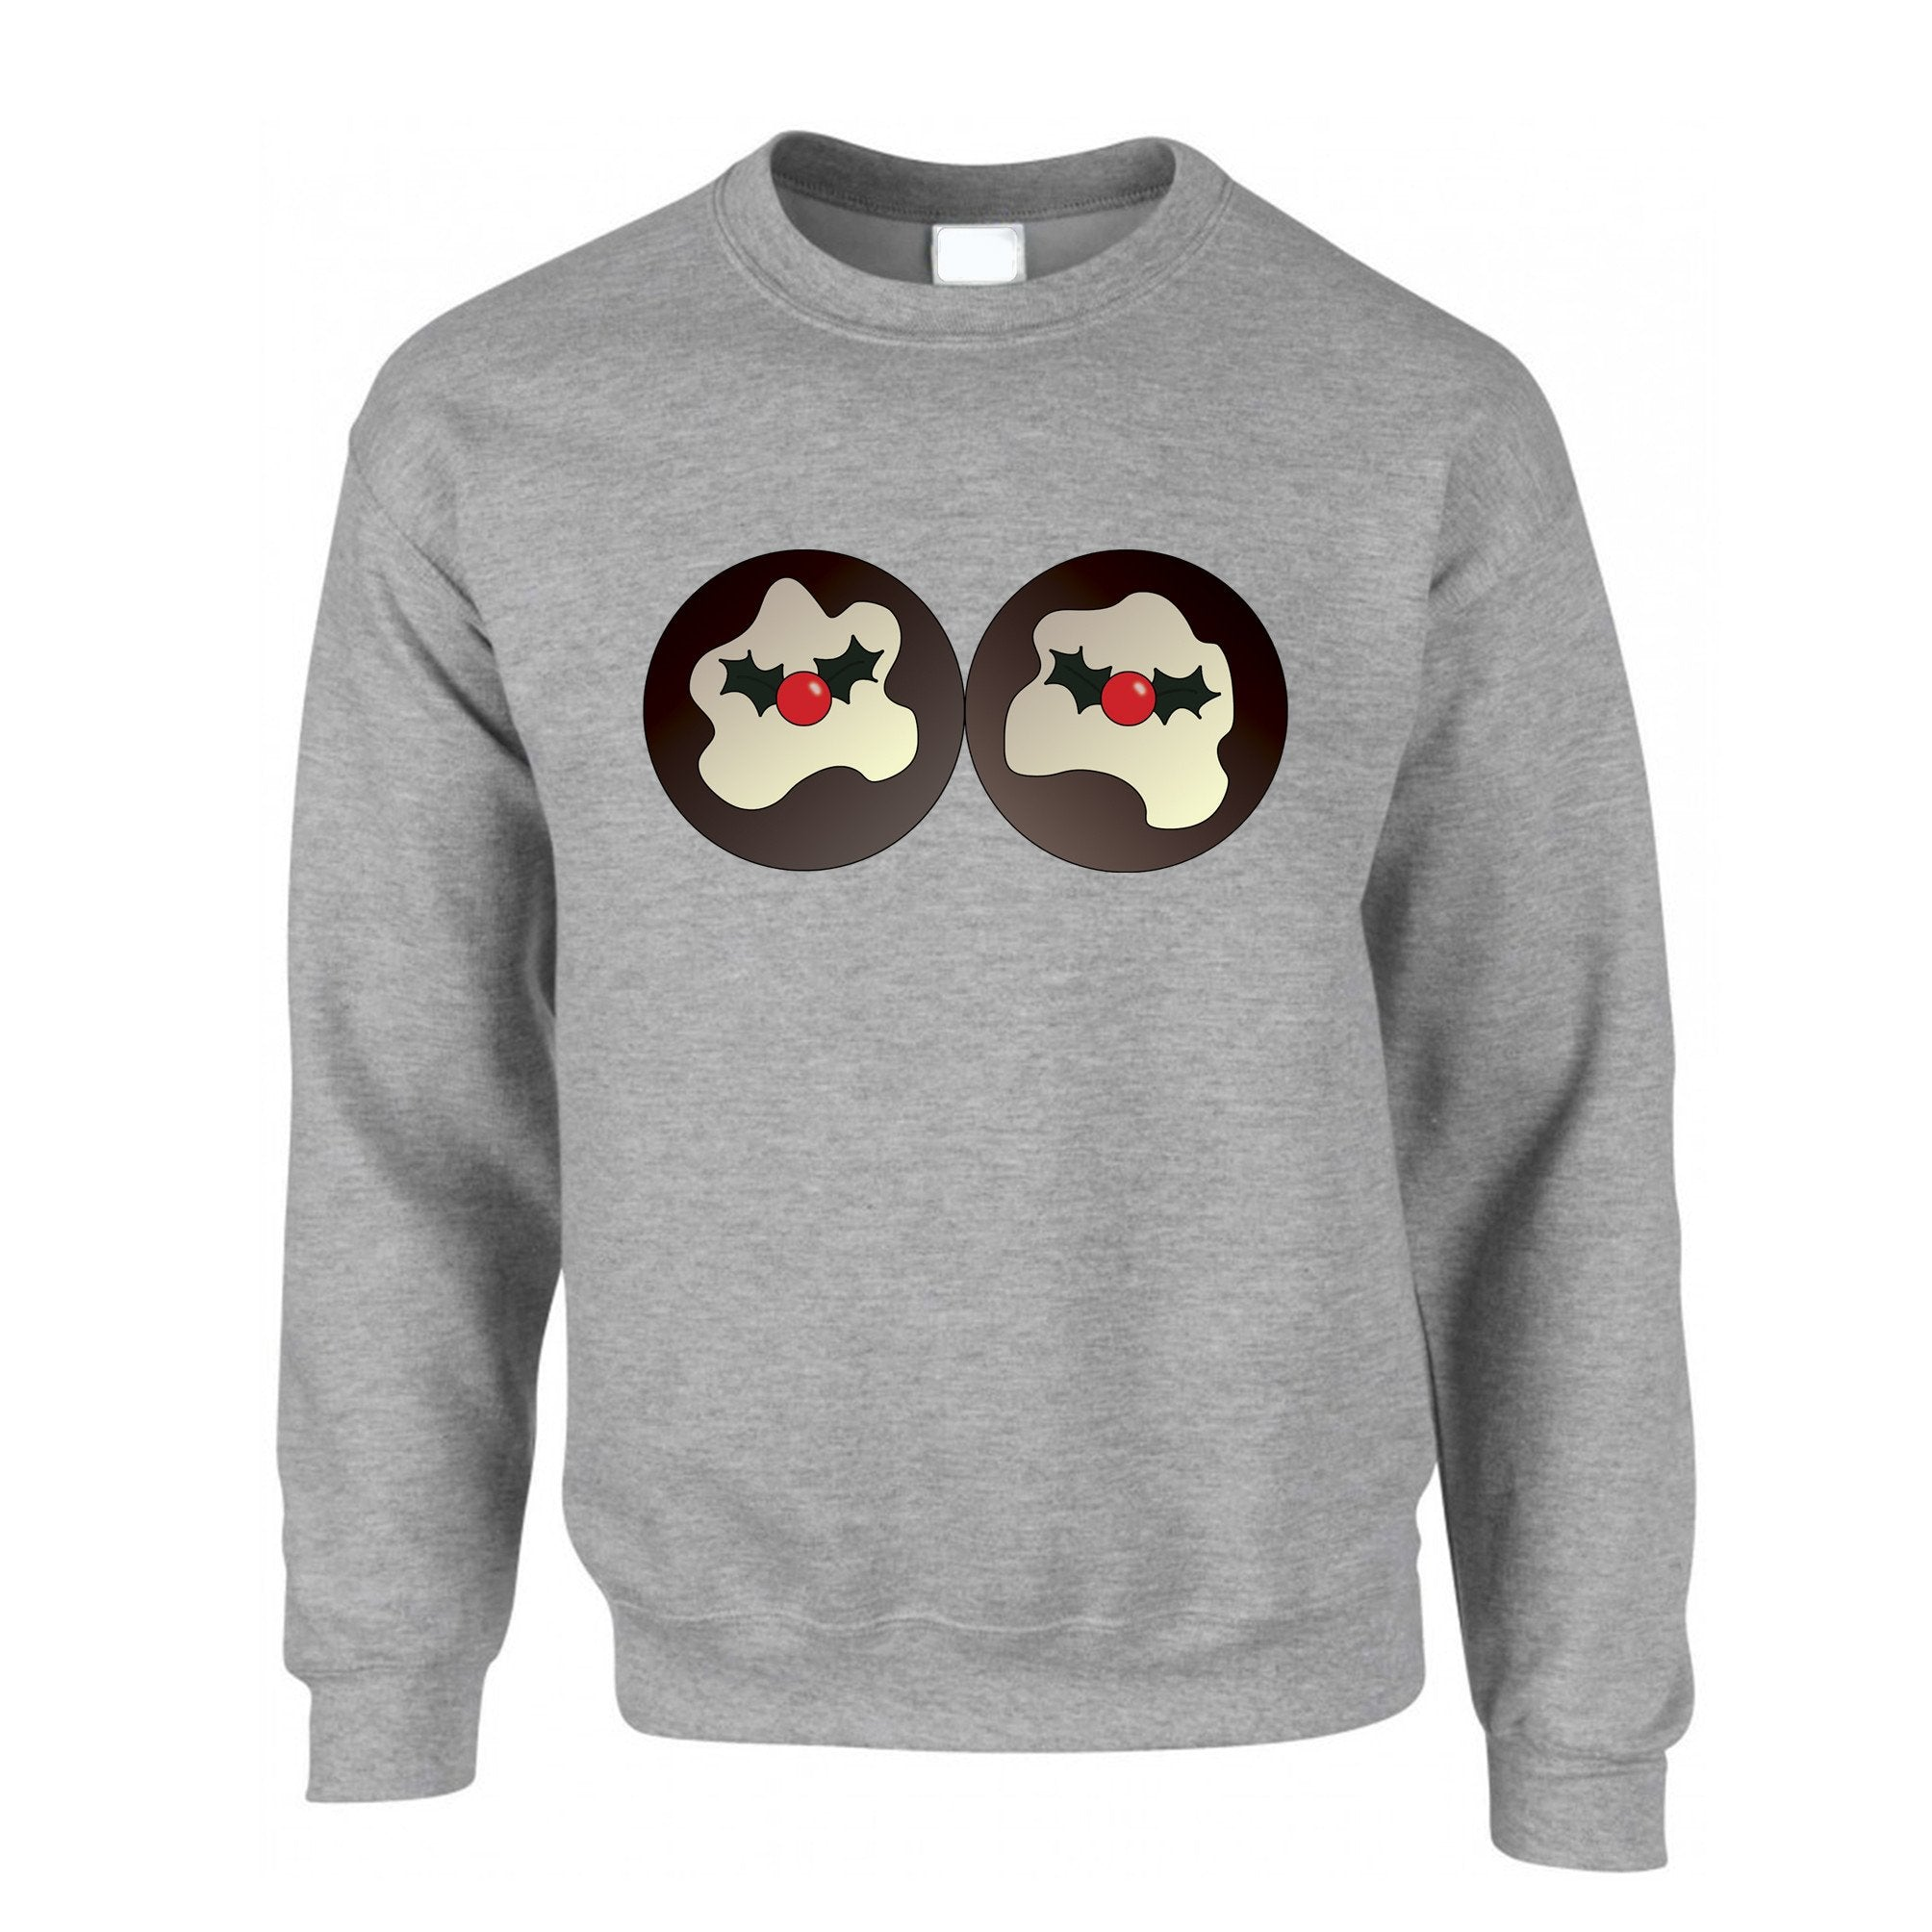 Rude Xmas Jumper Christmas Pudding Breasts Sweatshirt Sweater